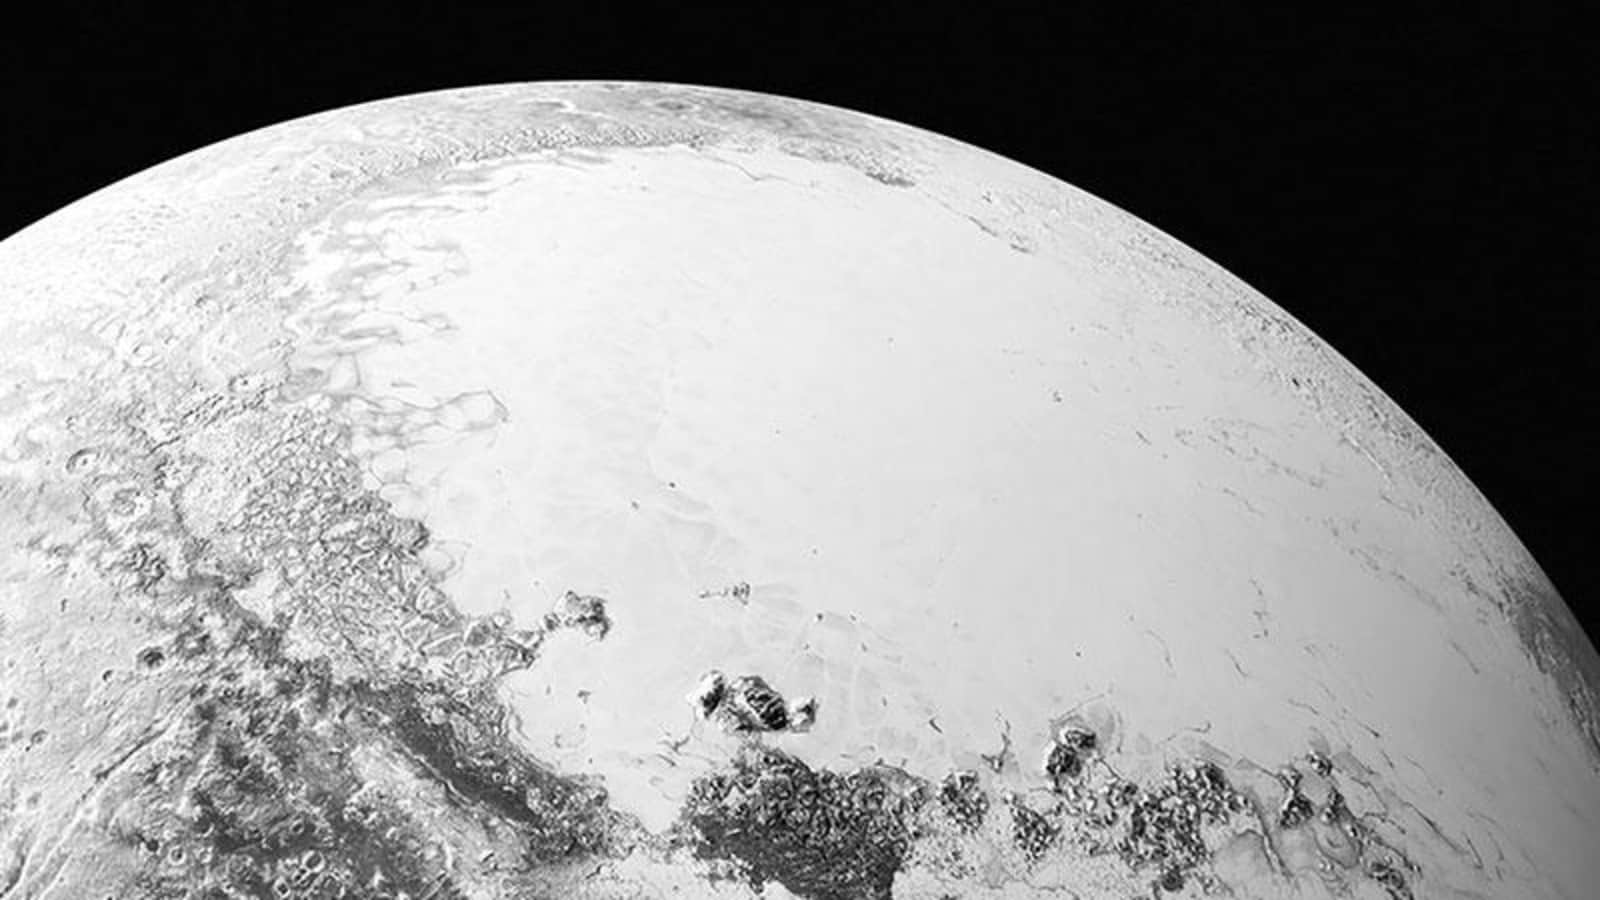 Pluto's atmosphere is disappearing. New research explains why